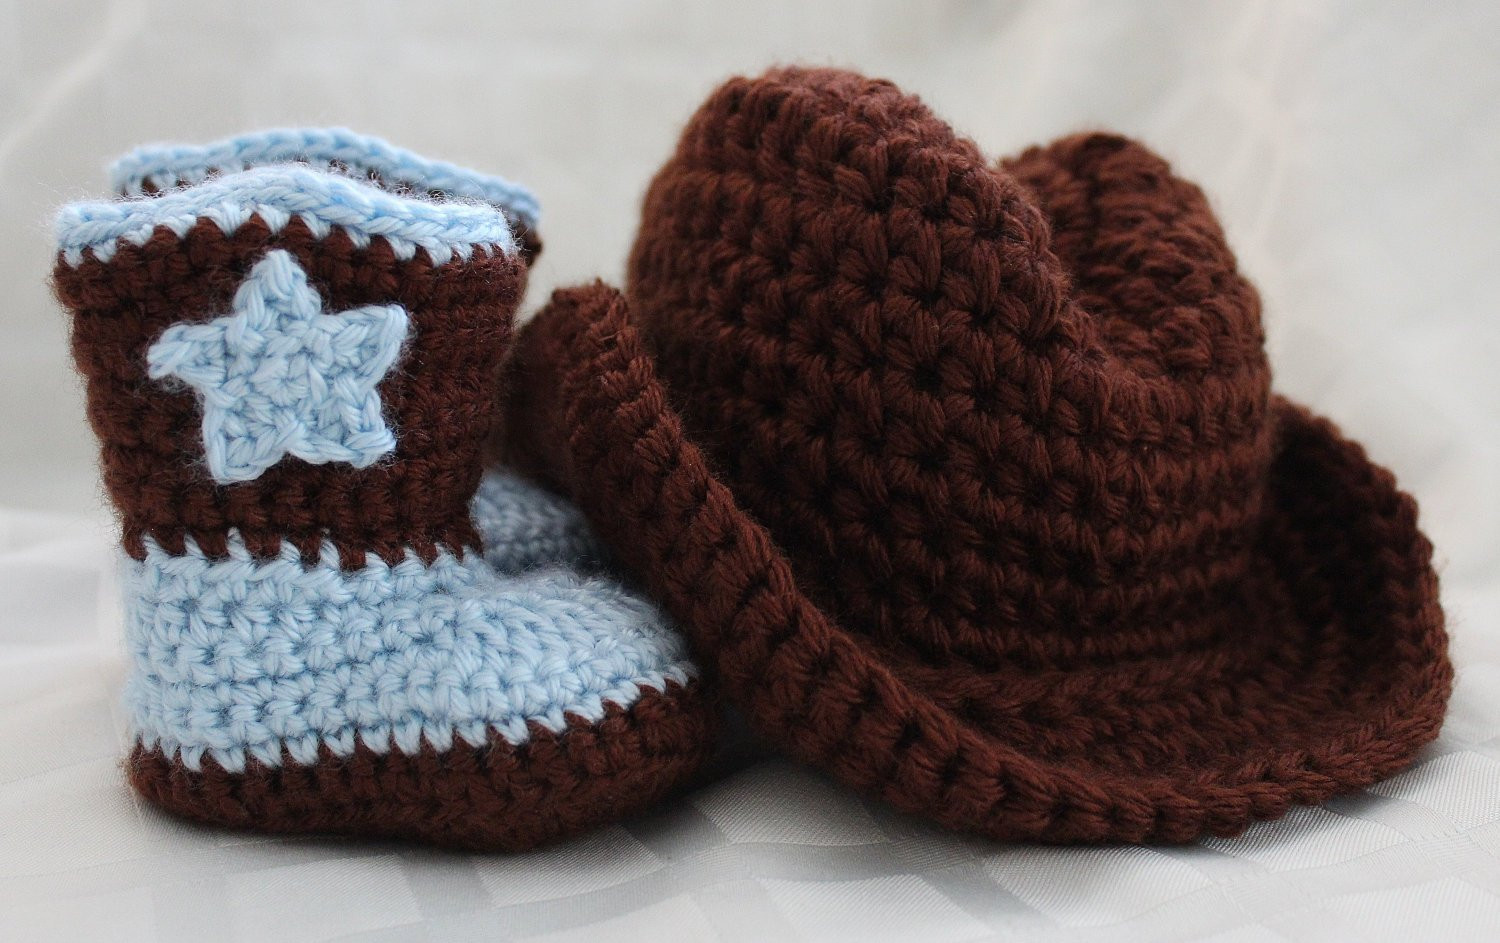 Crochet Cowboy Boots Lovely Crochet Cowboy Hat and Boots Prop by Of Marvelous 49 Pictures Crochet Cowboy Boots